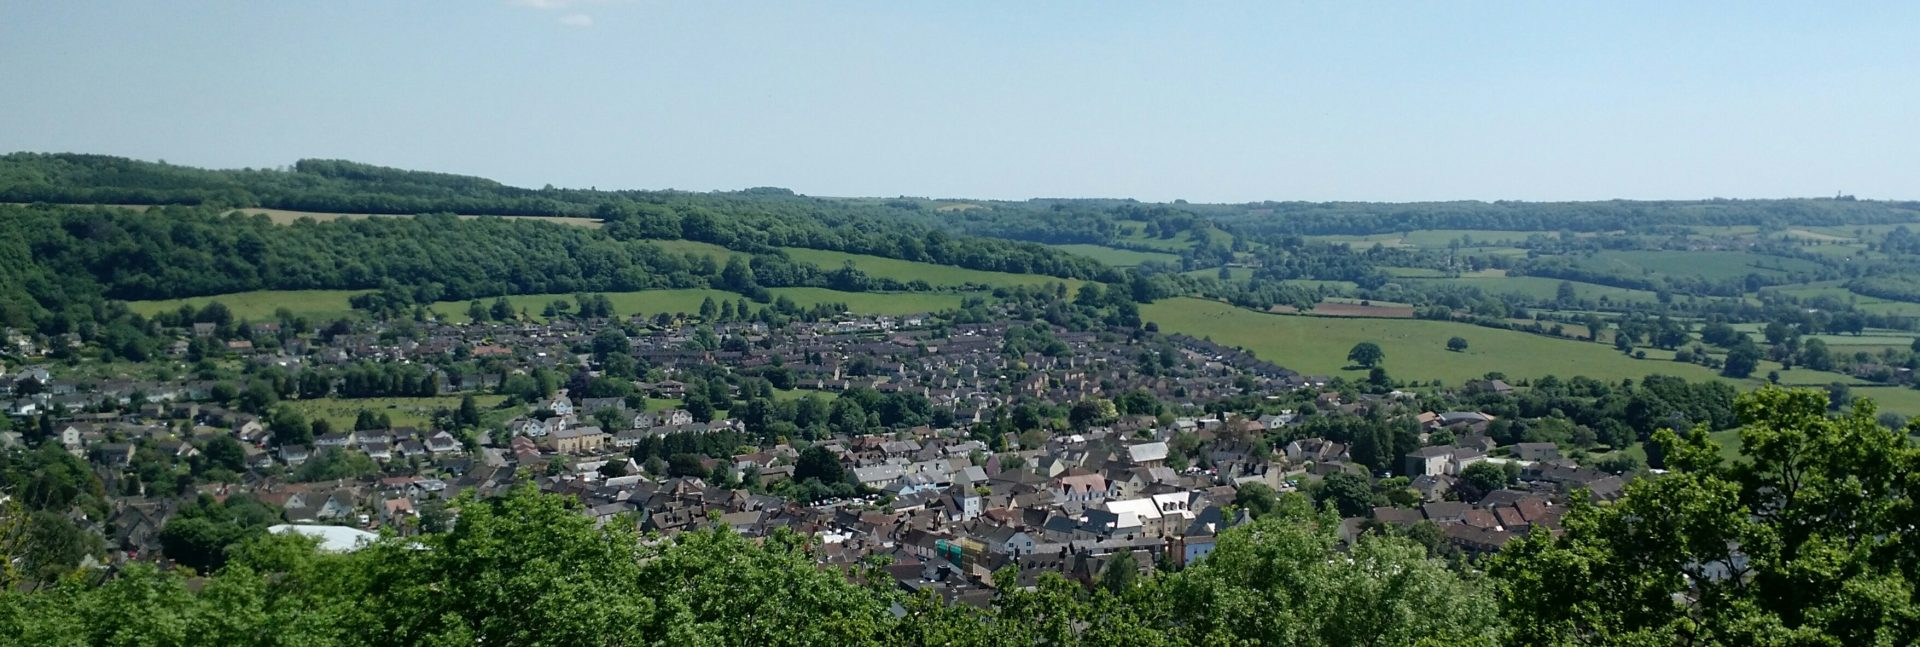 Wotton Under Edge from Wotton Hill, Cotswolds